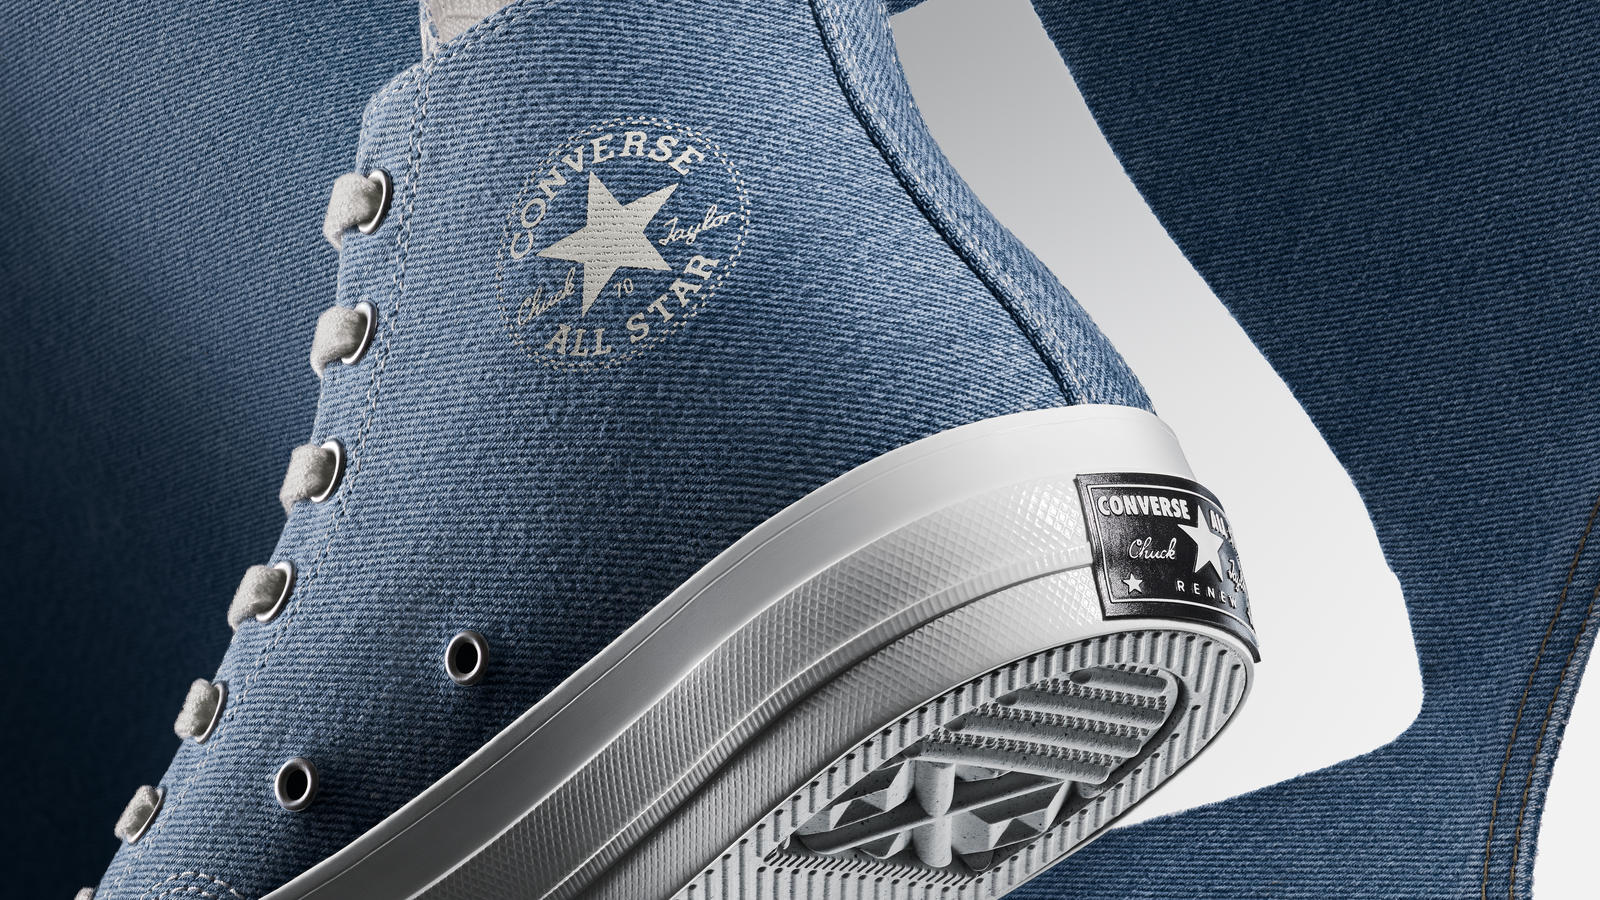 Converse Renew Denim Chuck 70 Collection 0